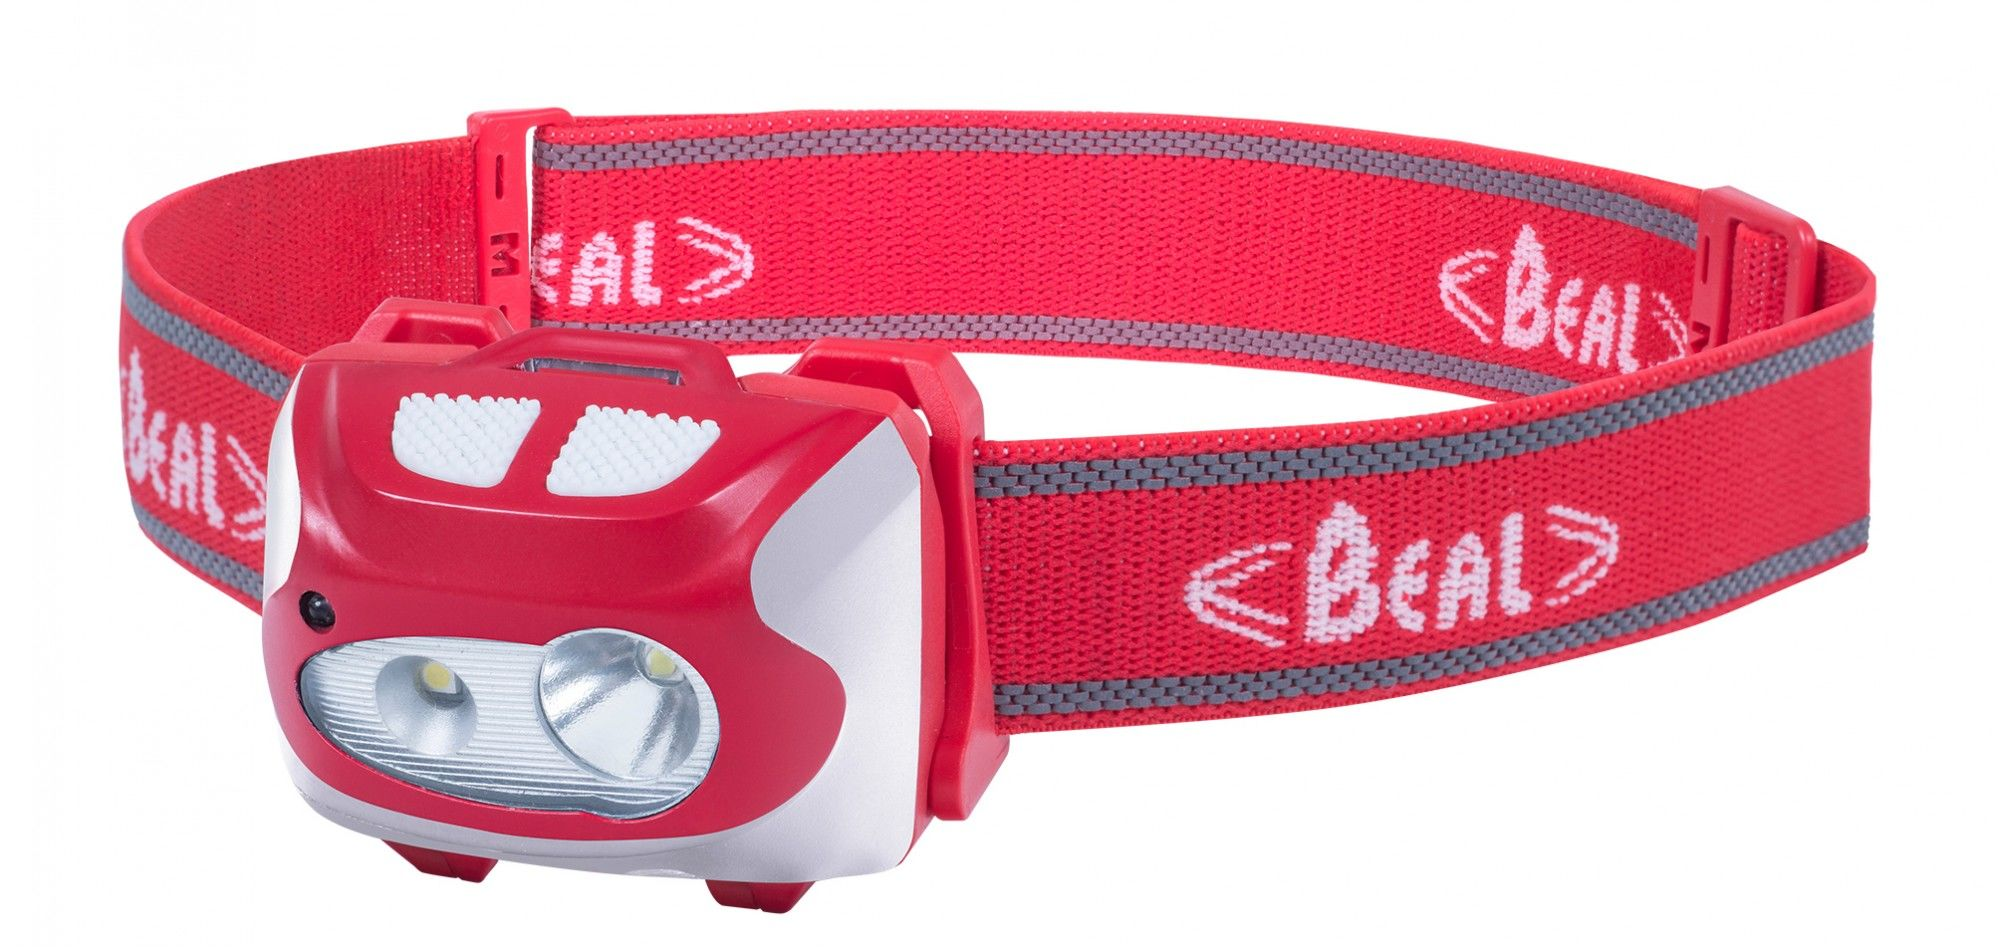 Beal Ff210 R Rot, One Size -Farbe Red, One Size